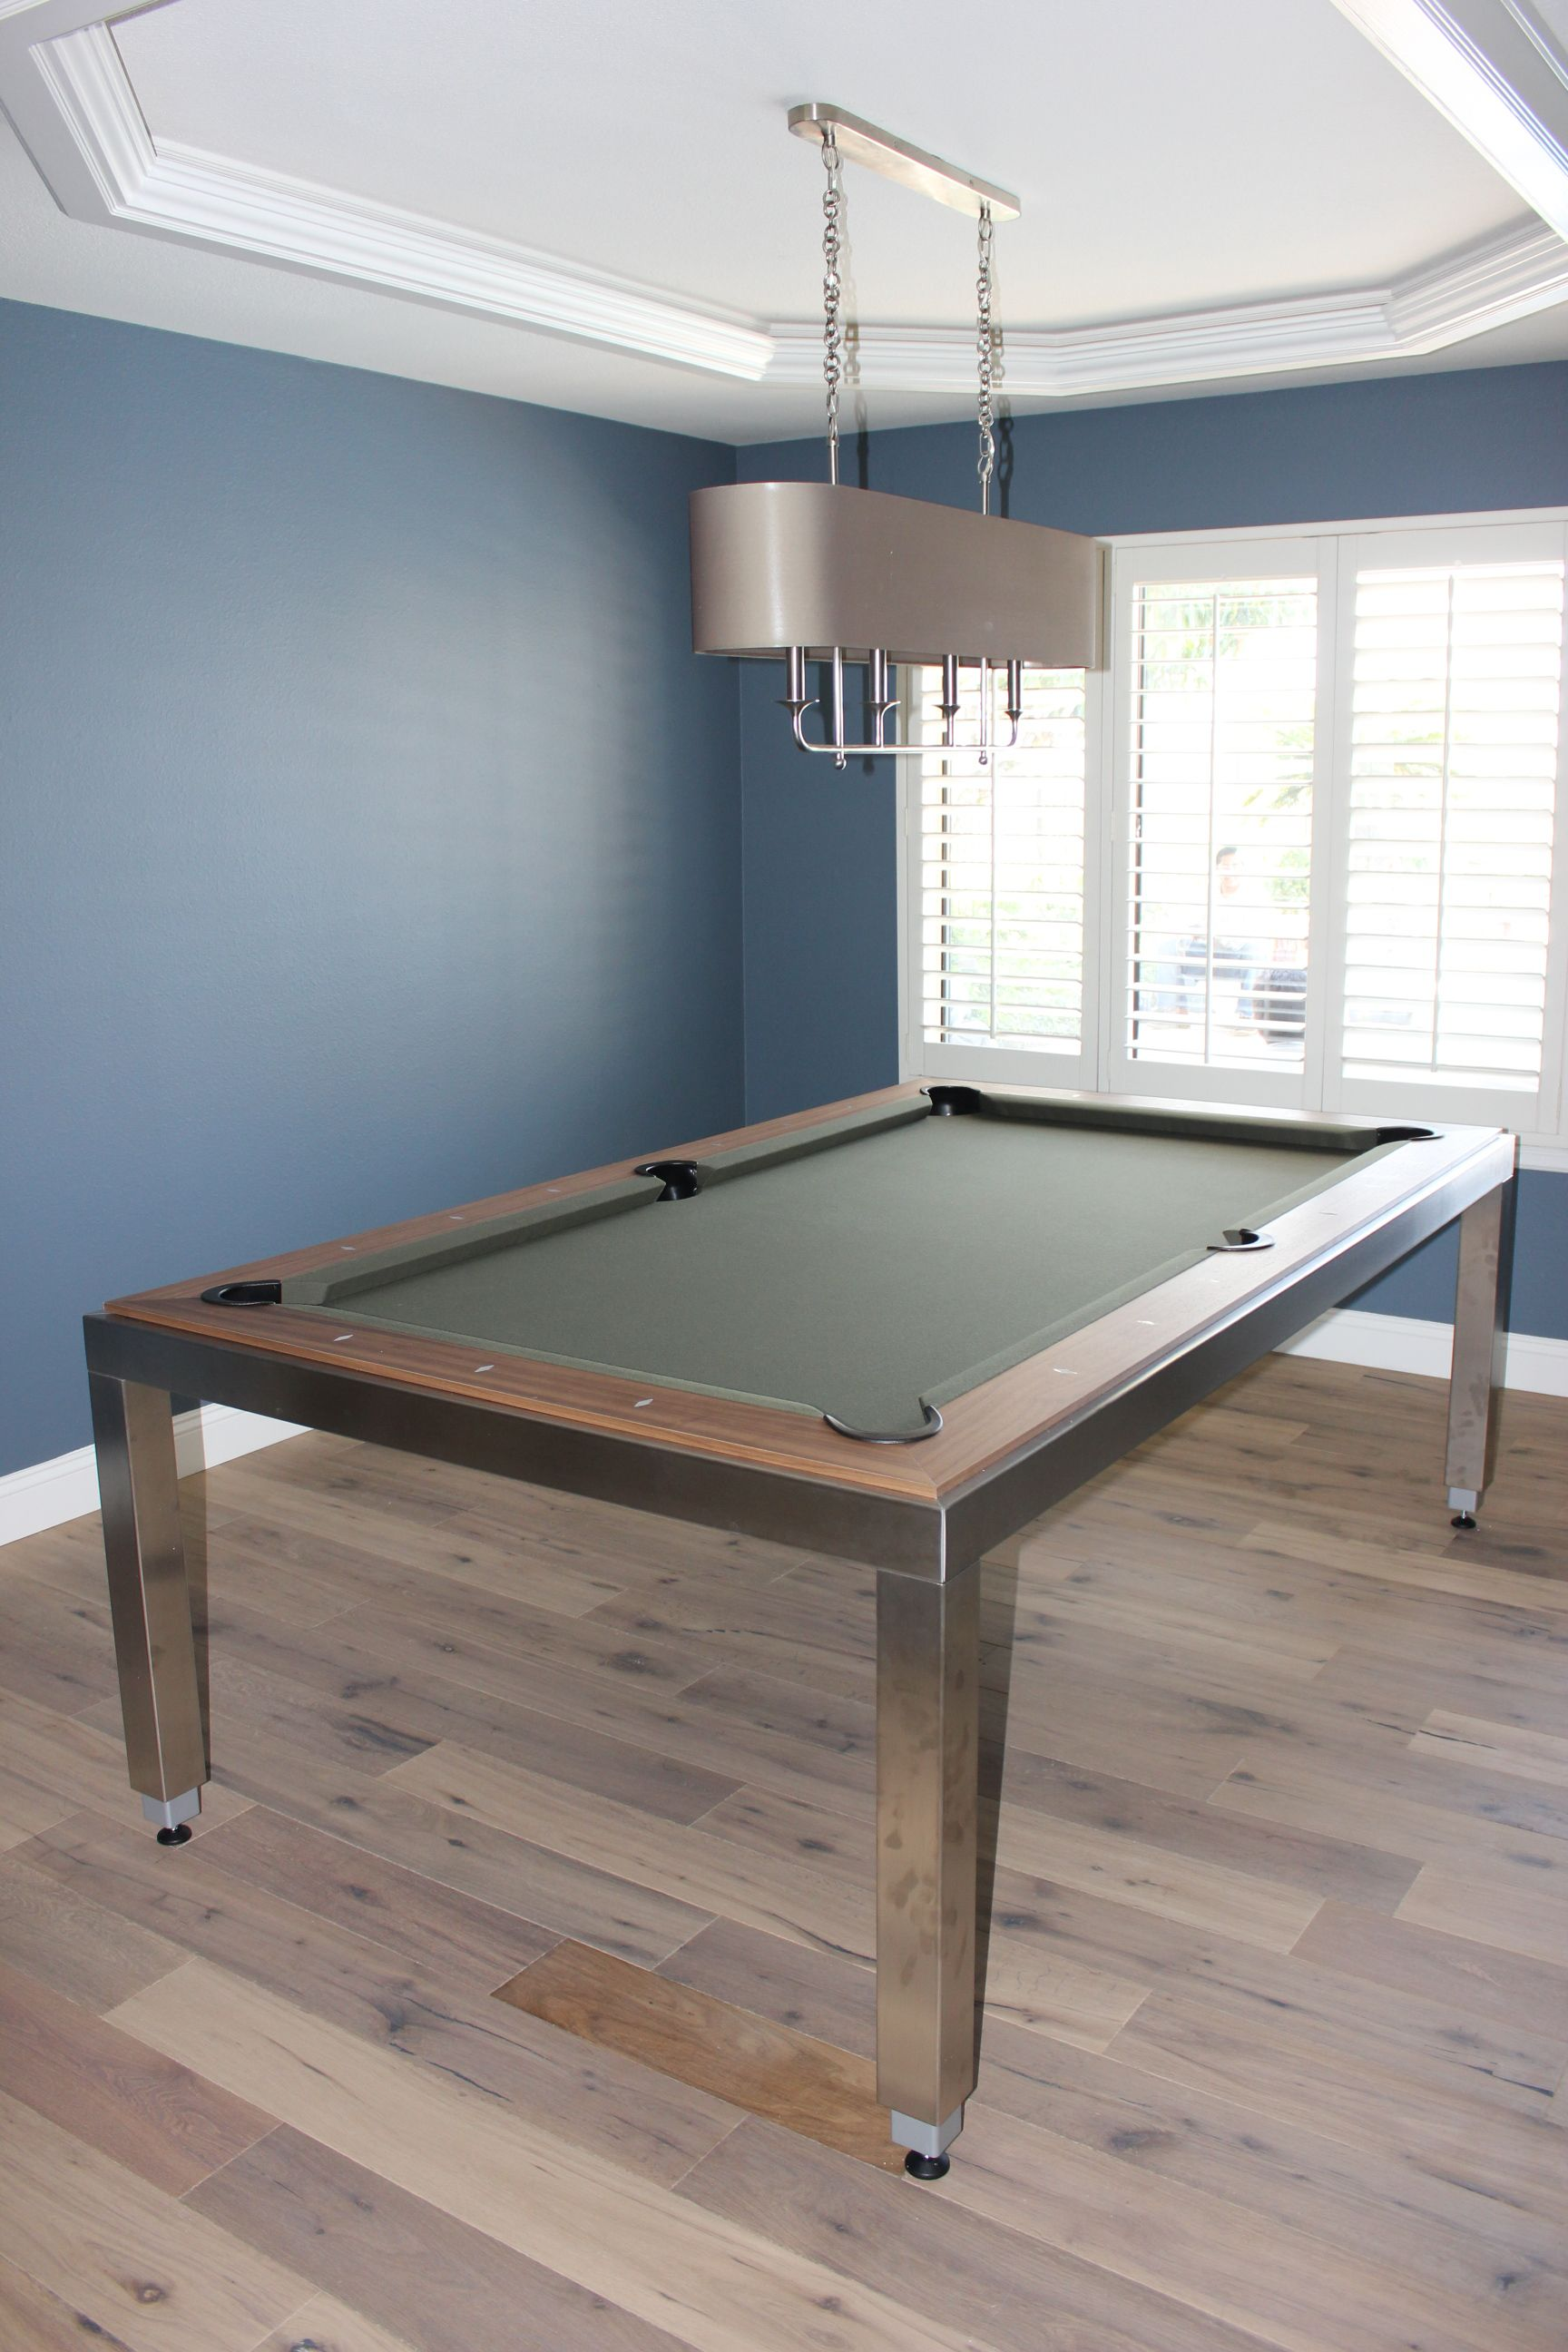 Stainless Steel Fusion DK Billiards Pool Table Moving Repair - Pool table movers orange county